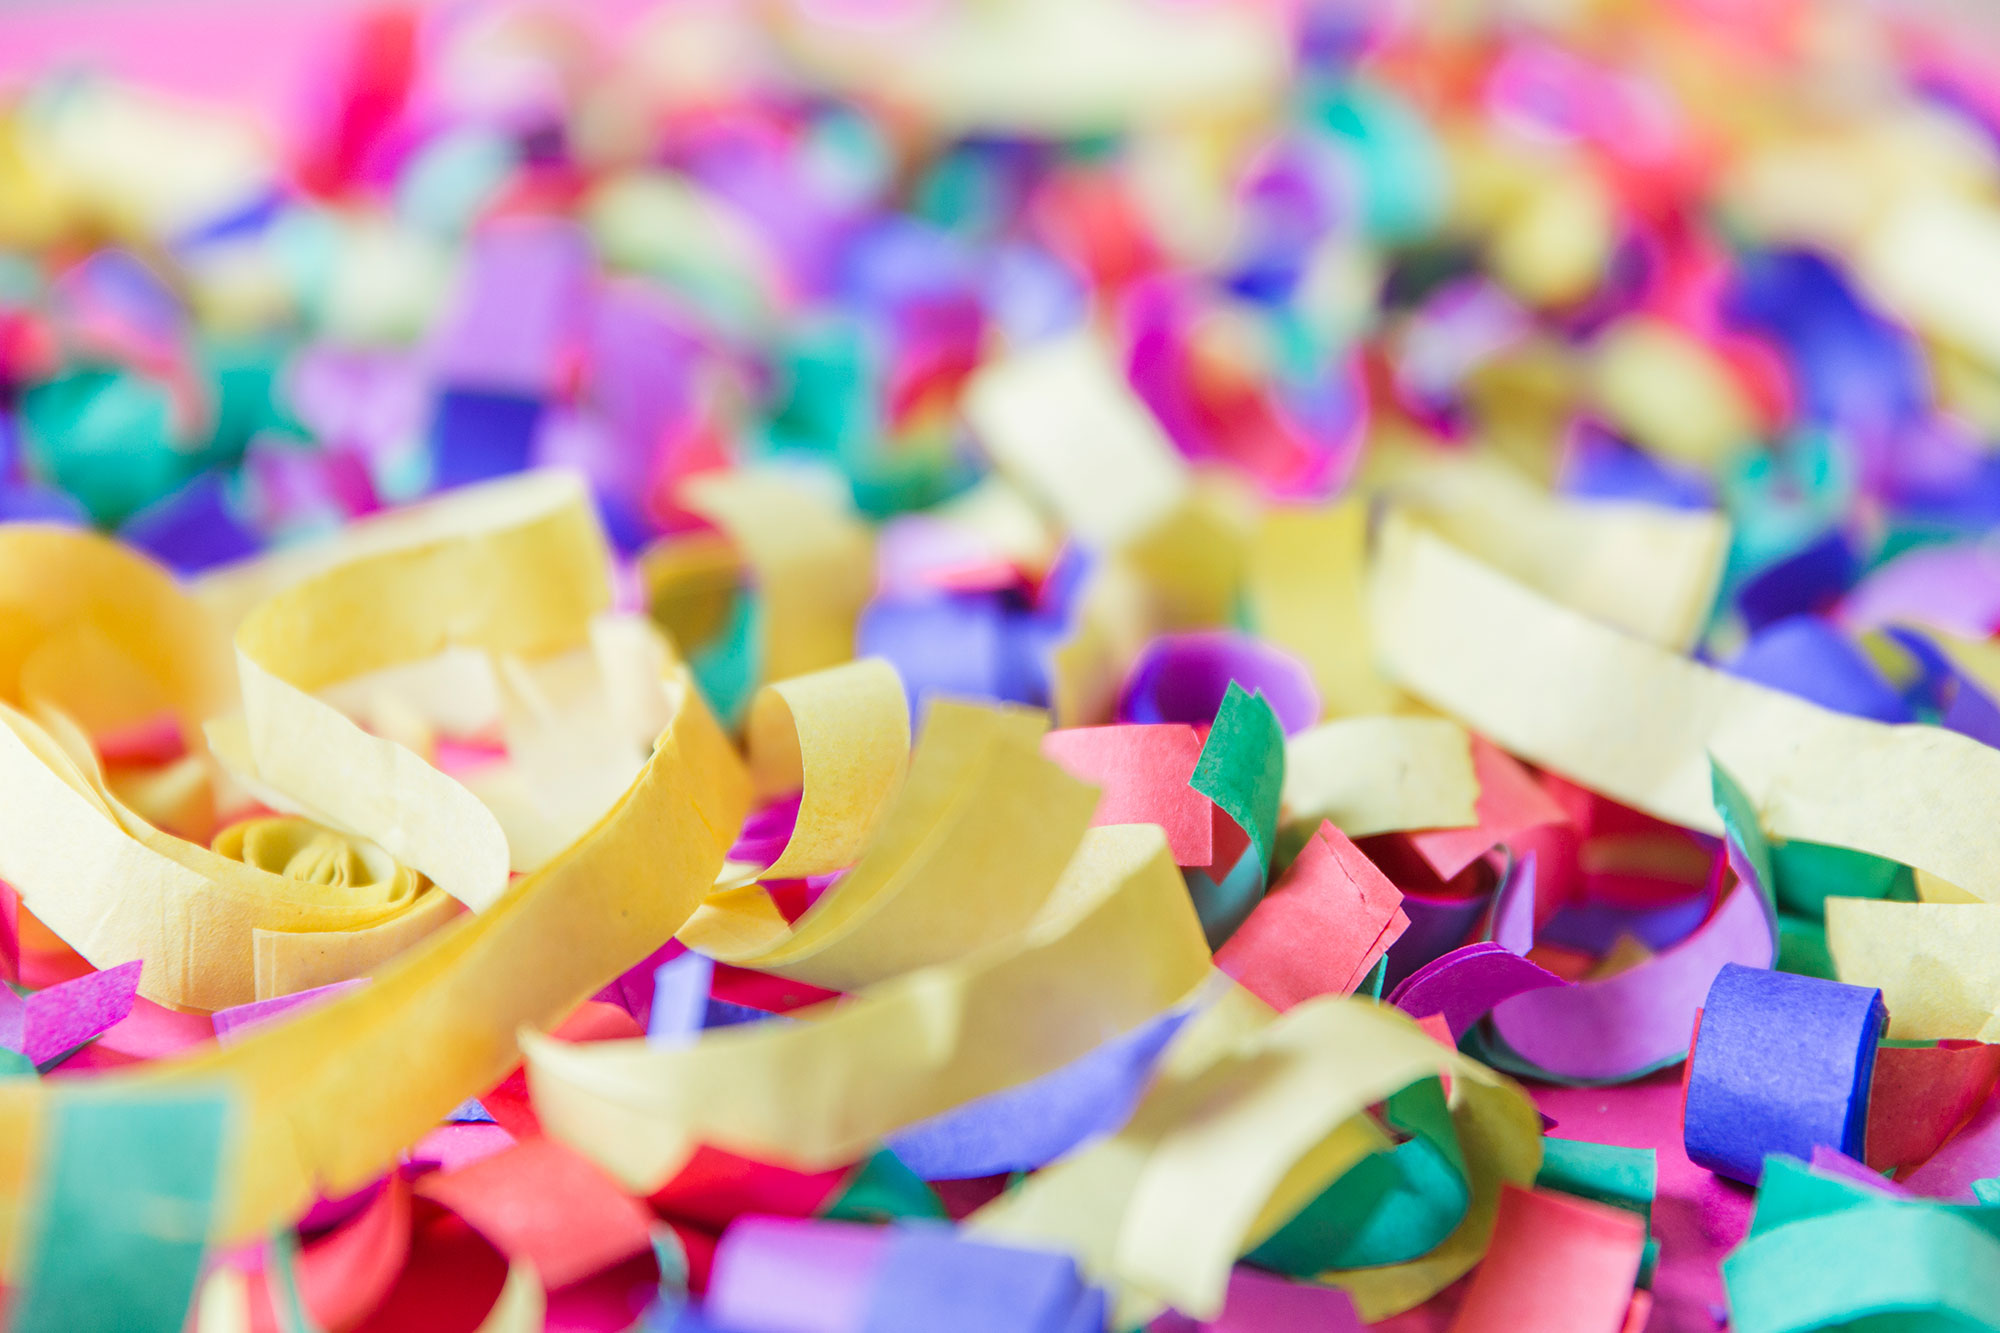 An A close-up photo shows colorful paper confetti.